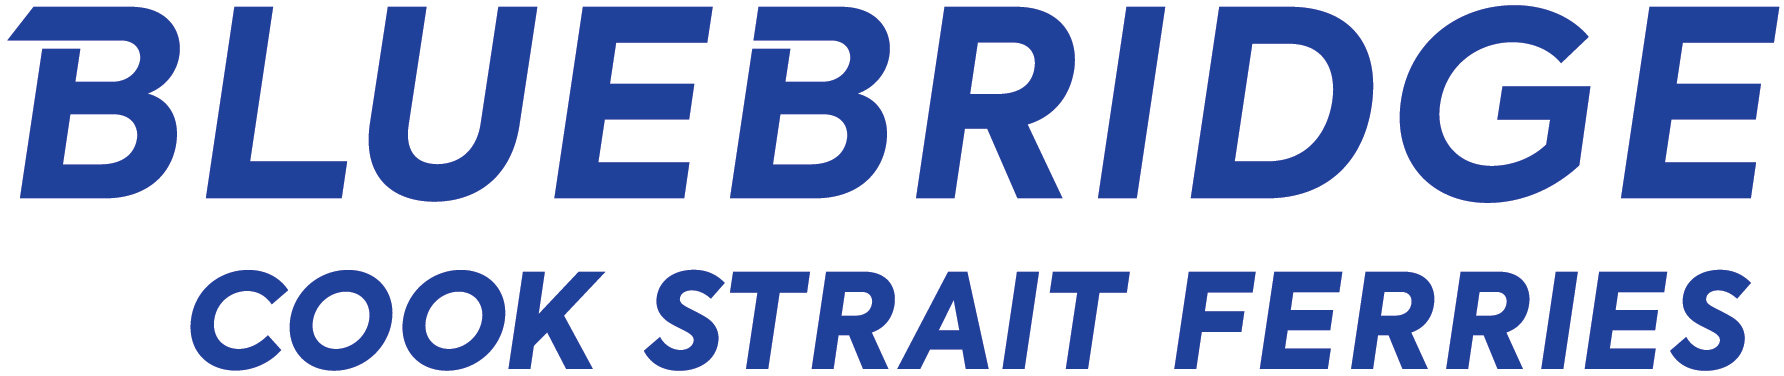 Bluebridge Cook Strait Ferries logo